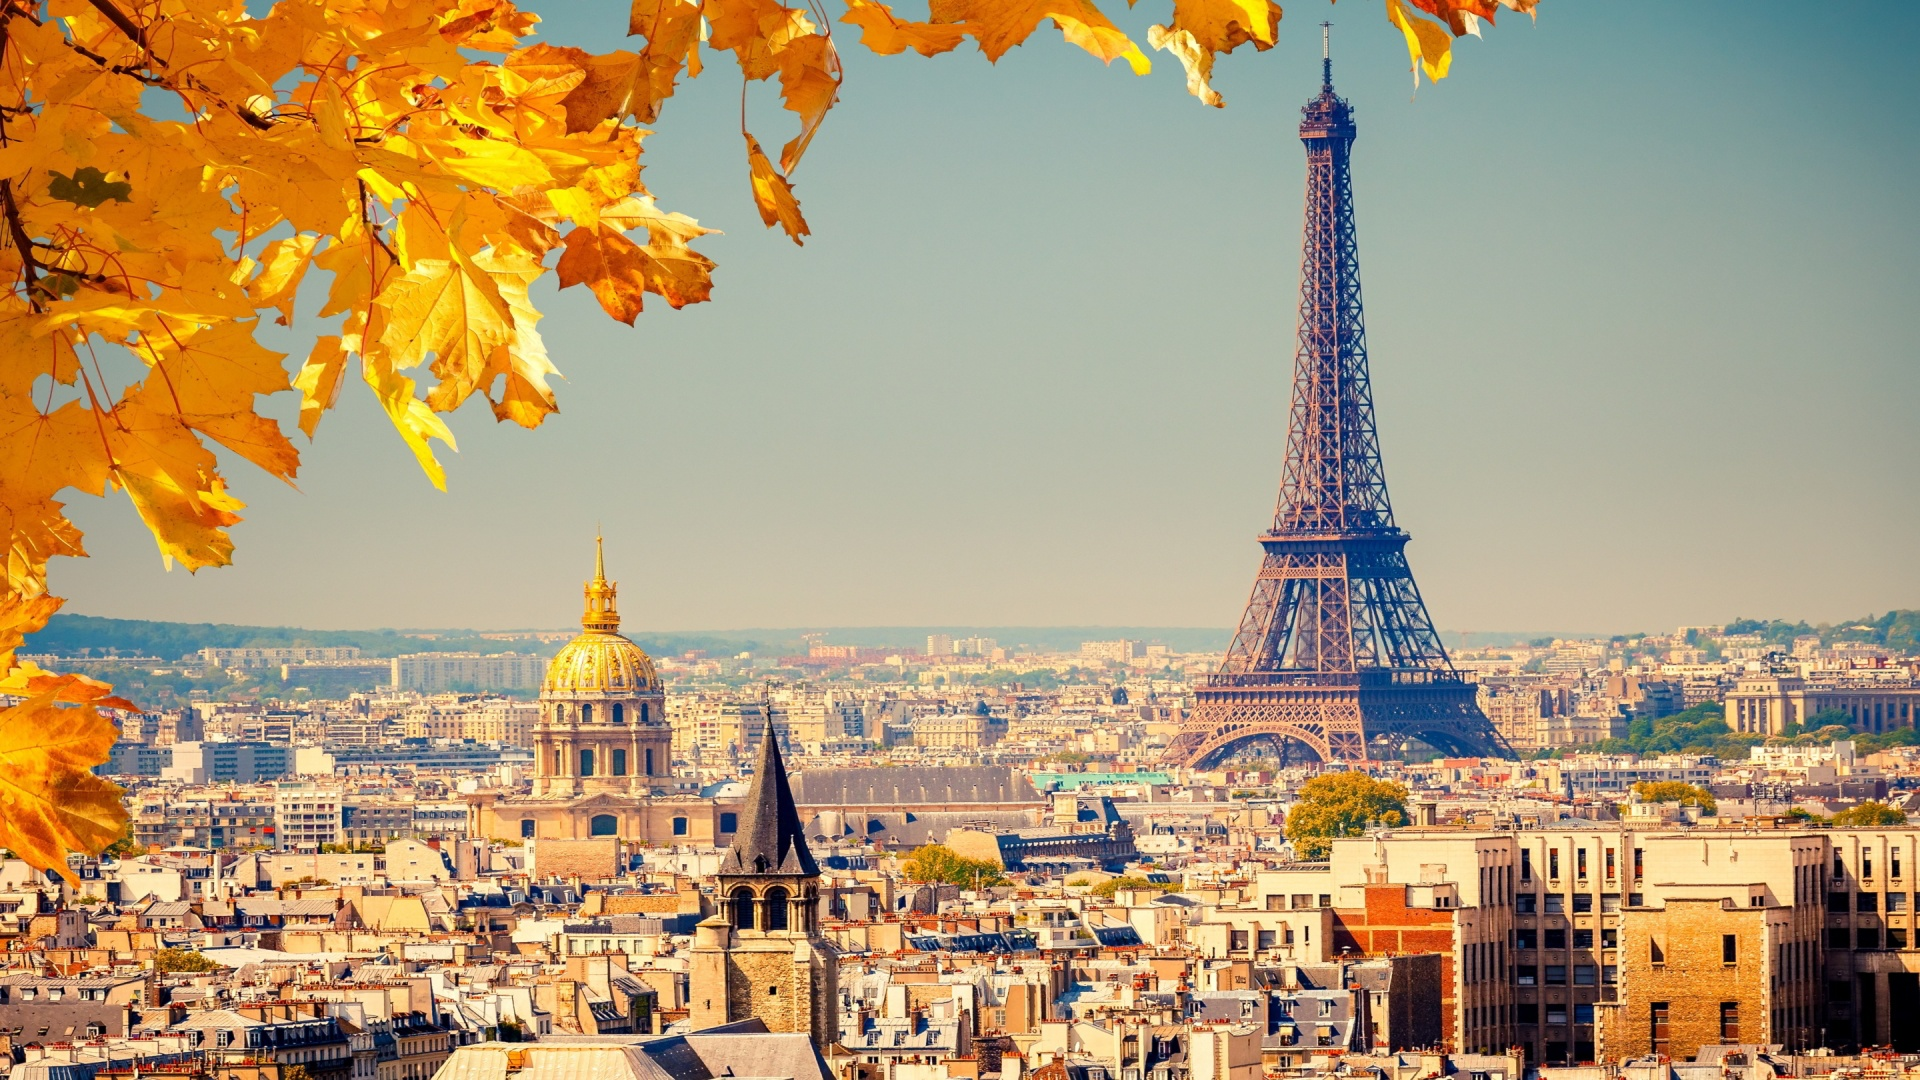 35 hd paris backgrounds the city of lights and romance for Parigi wallpaper